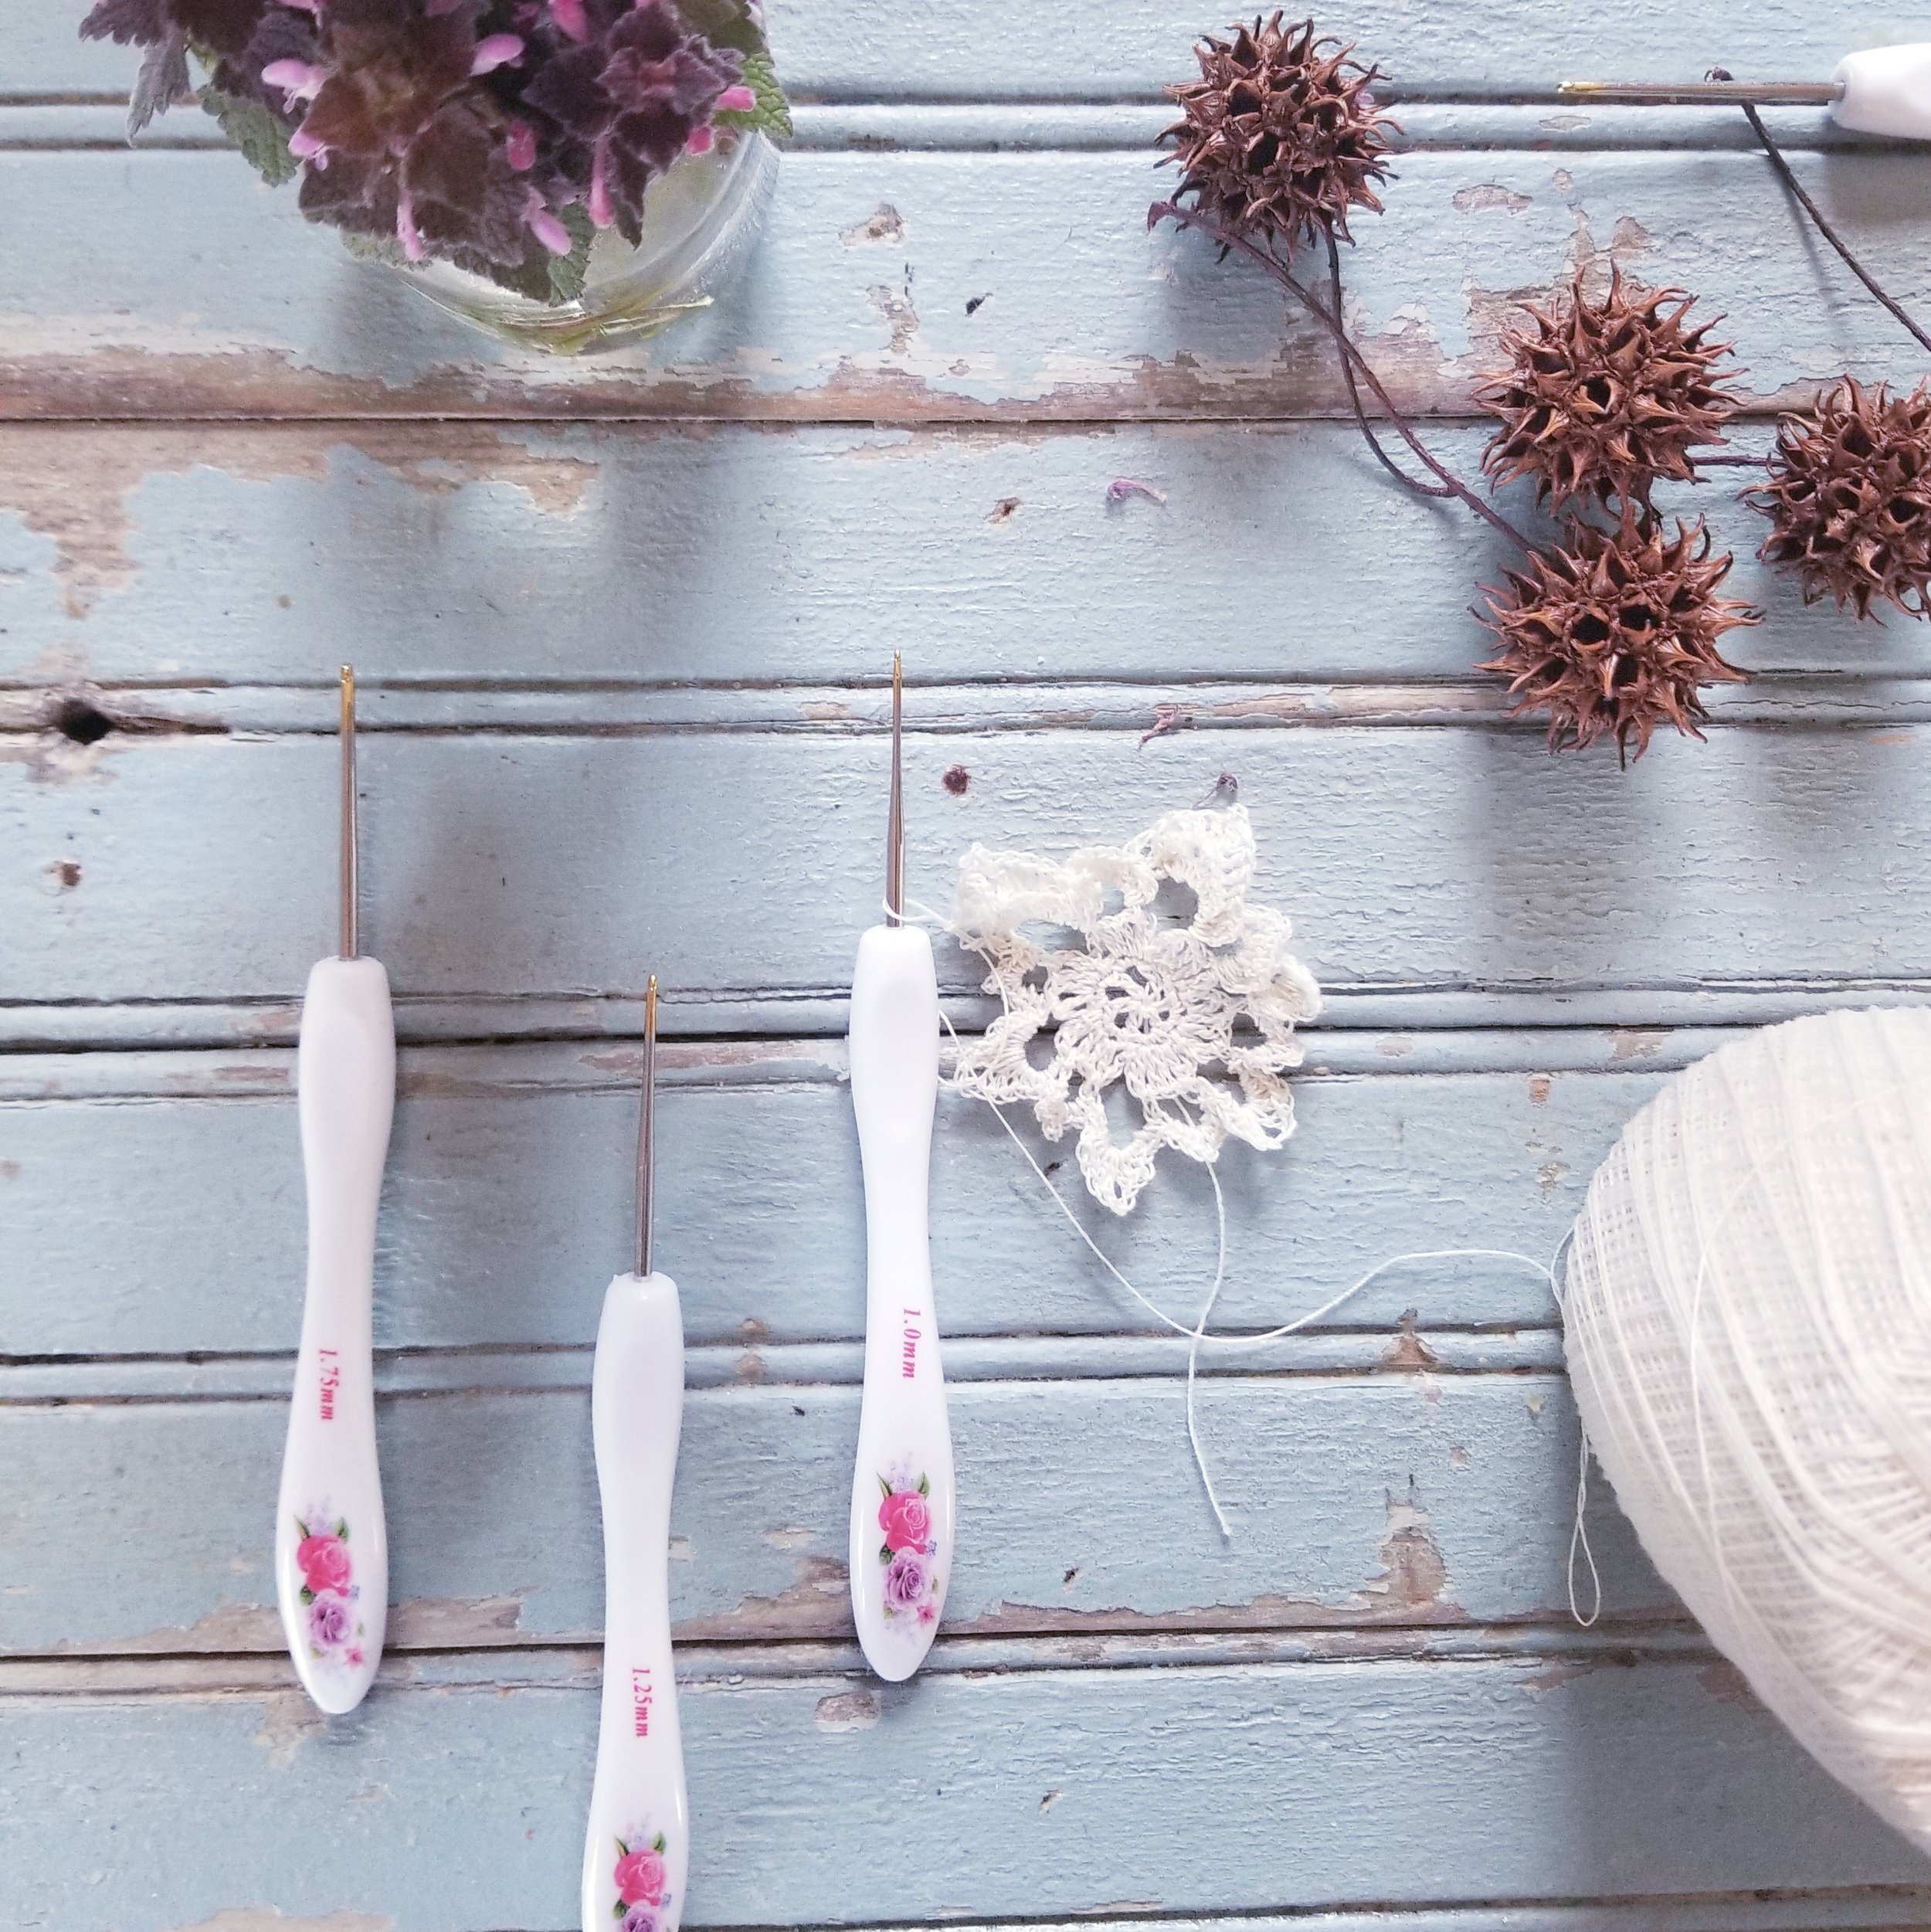 How to Crochet with Thread